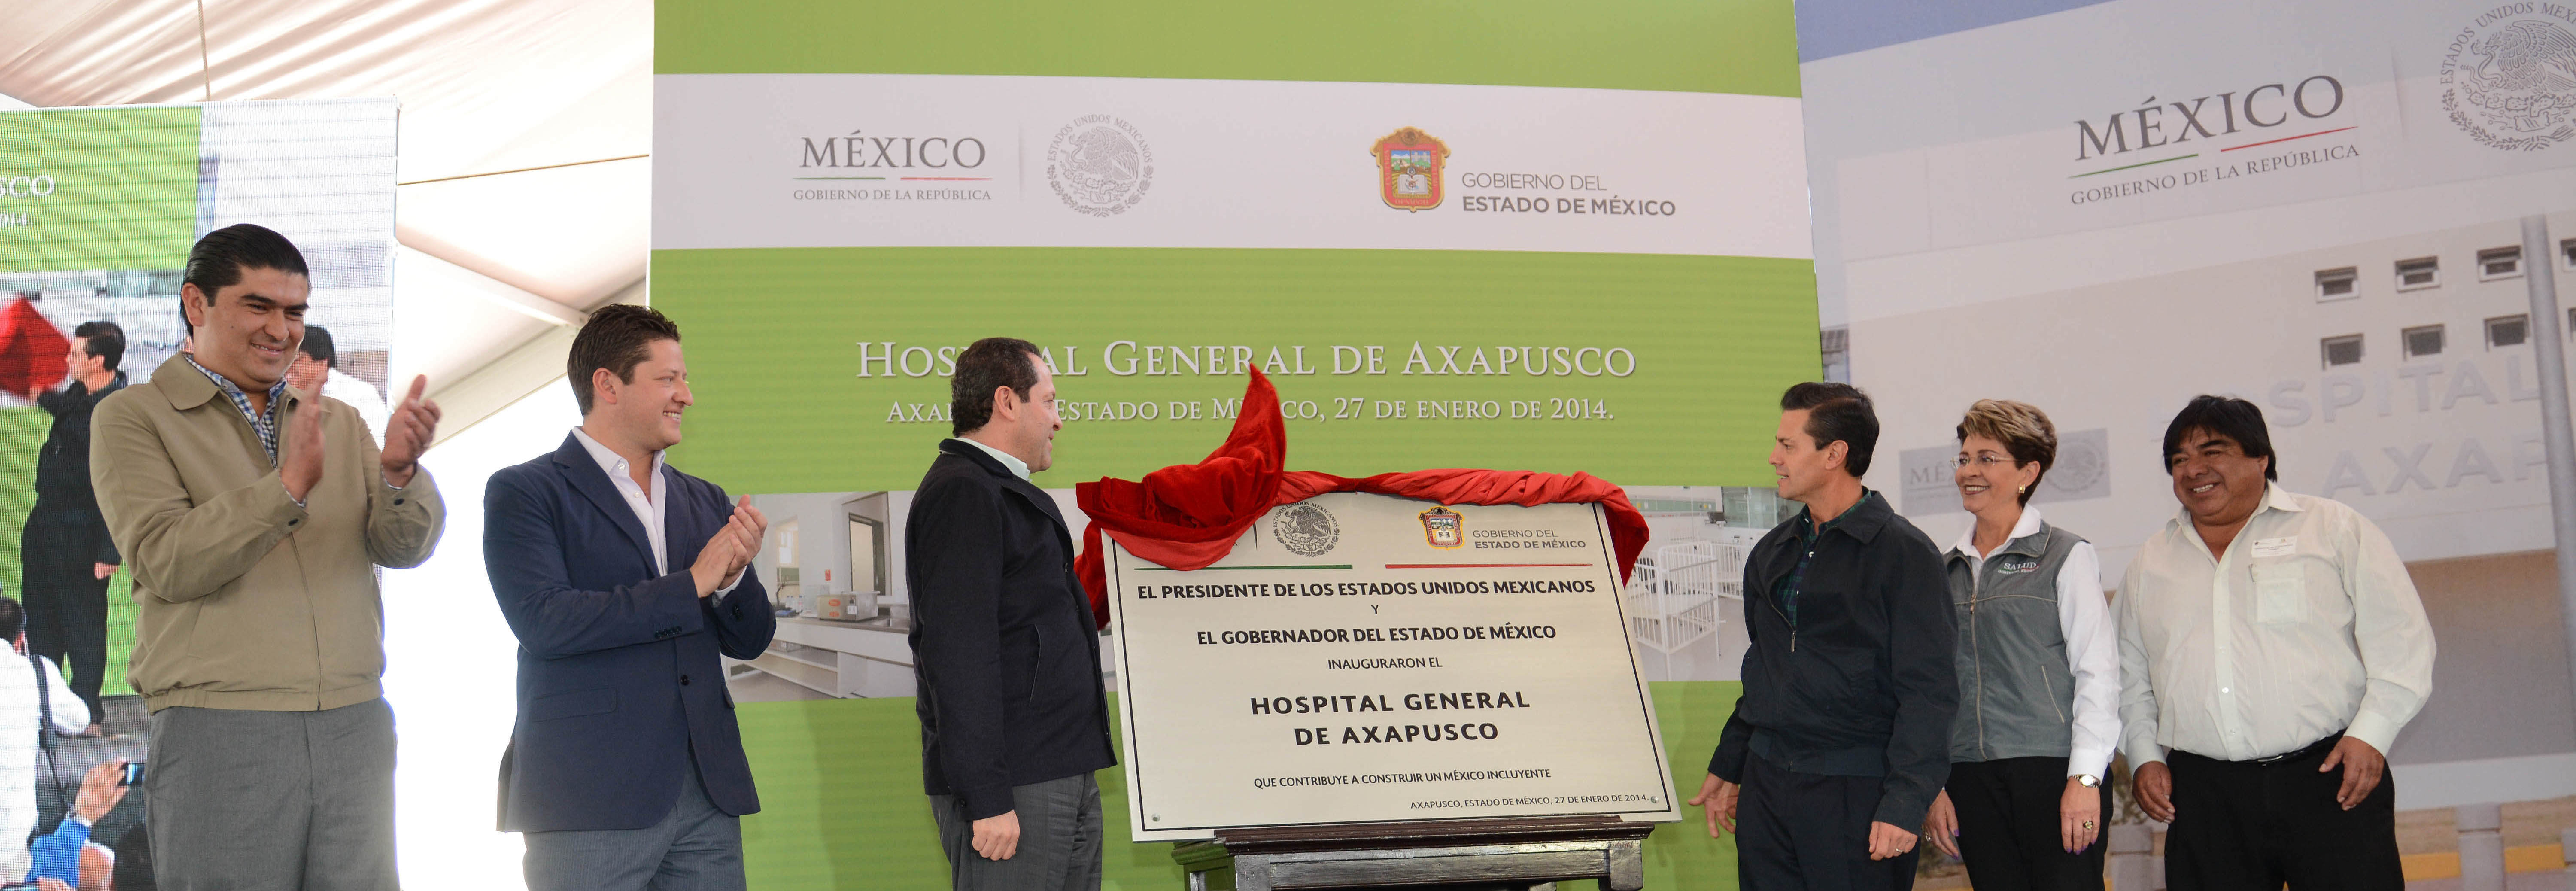 Inauguracin del hospital general de axapusco estado de mxico 12181286194 o